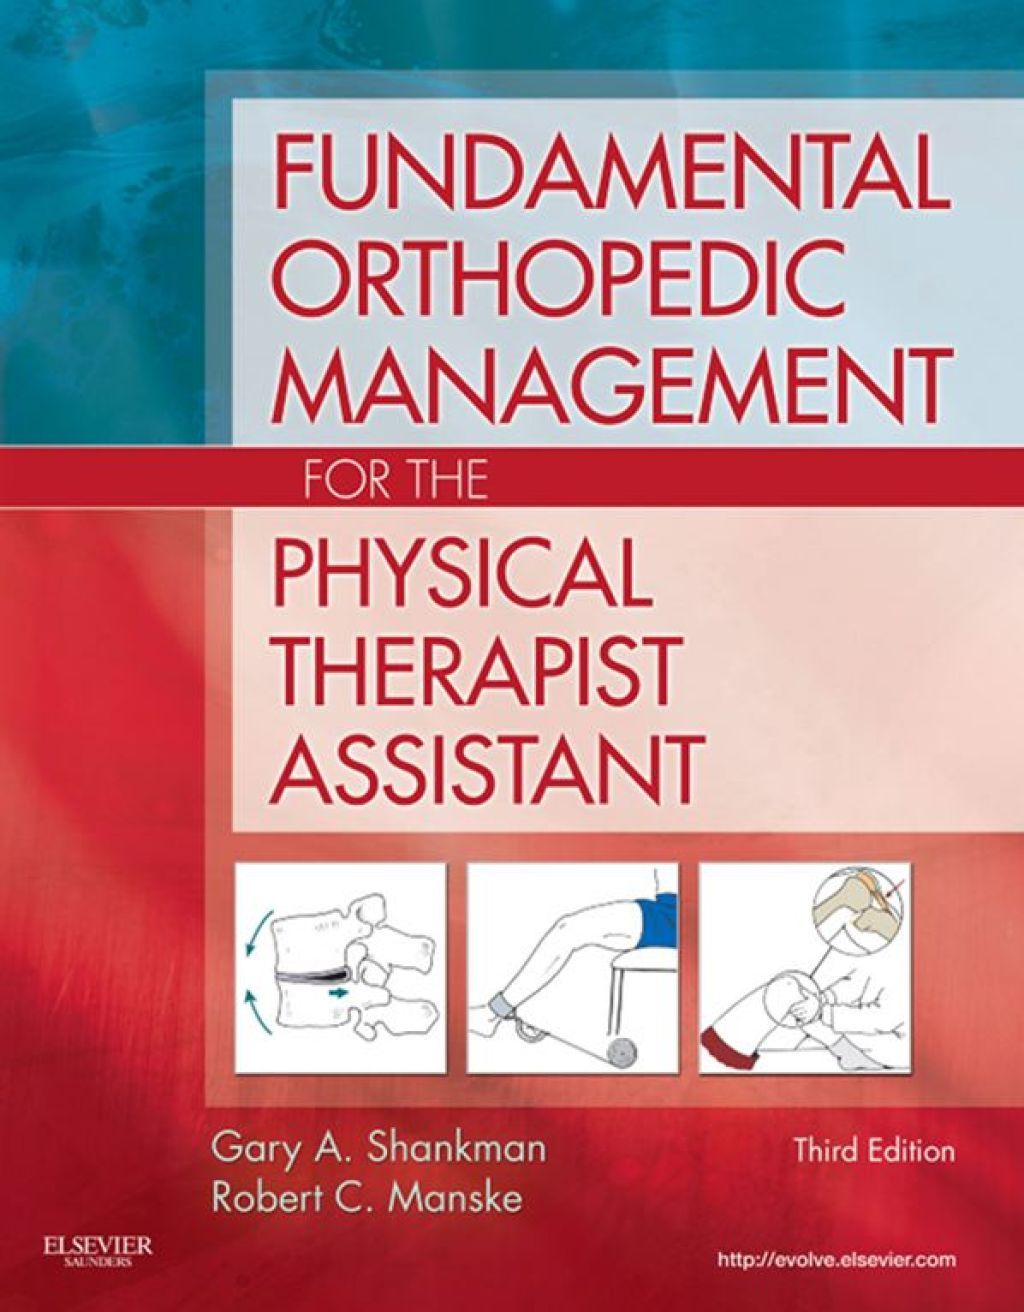 Fundamental Orthopedic Management for the Physical